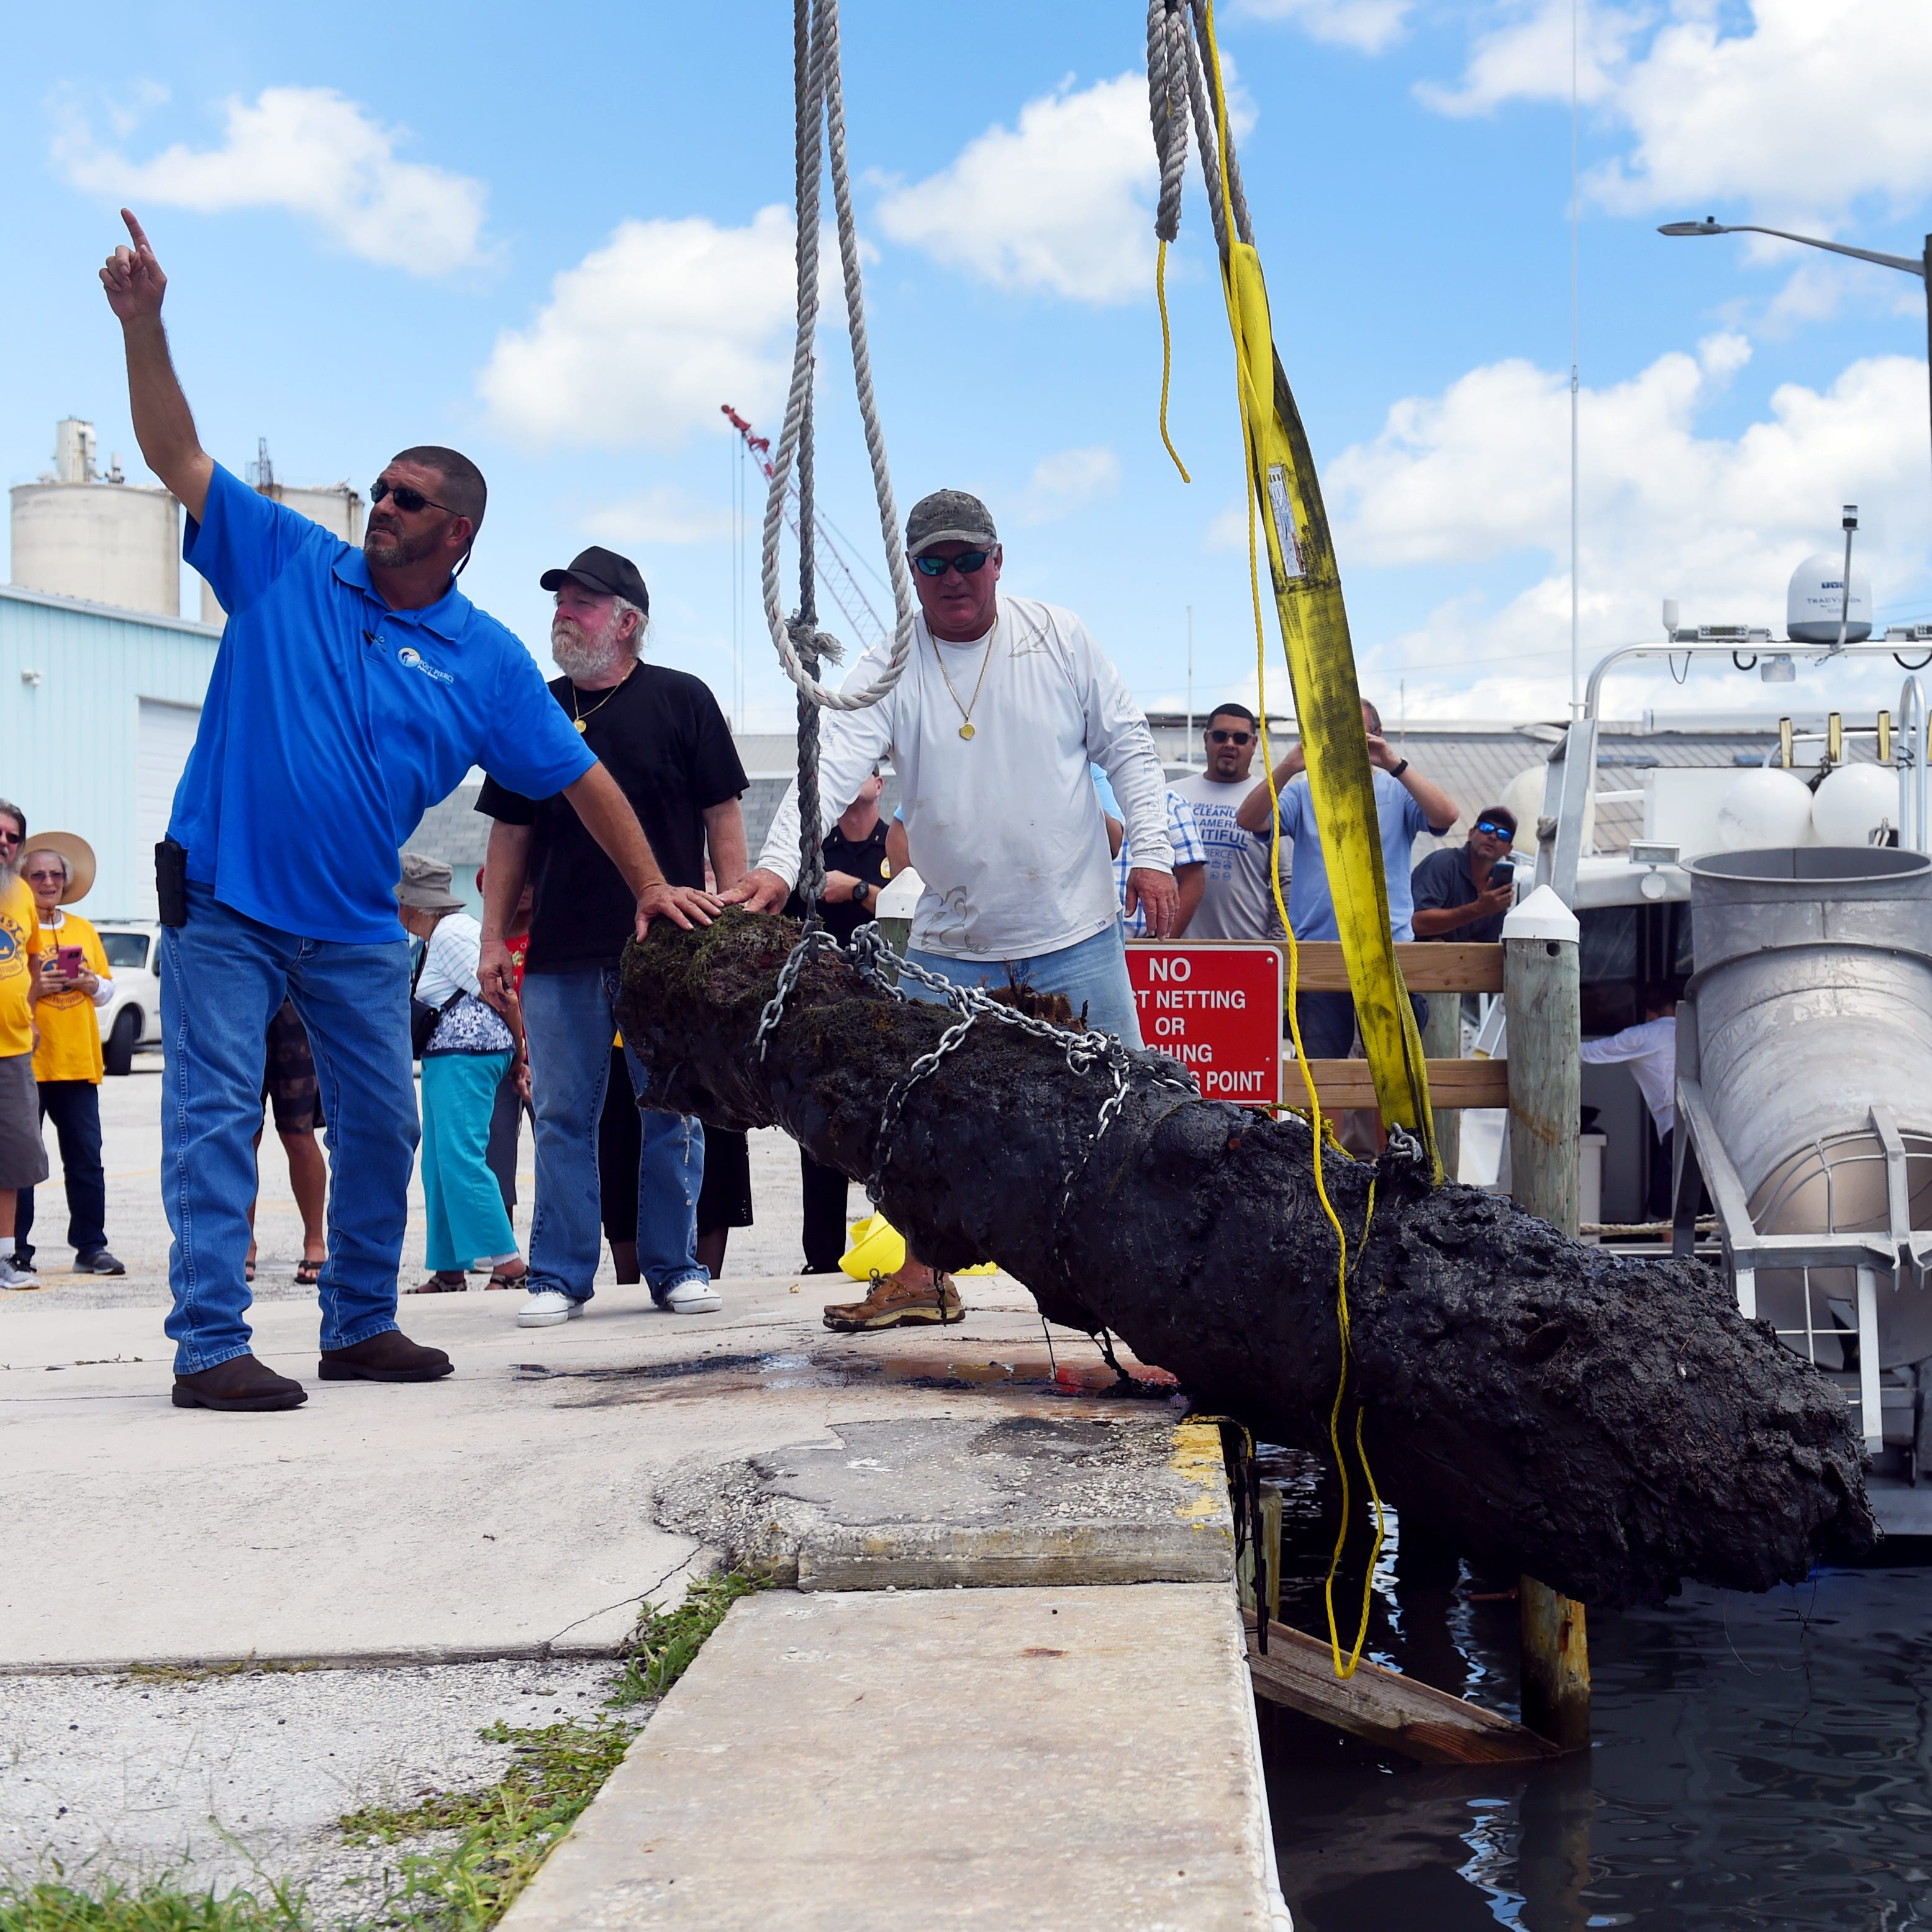 Spanish cannon from 1715 Fleet recovered off Fort Pierce coast